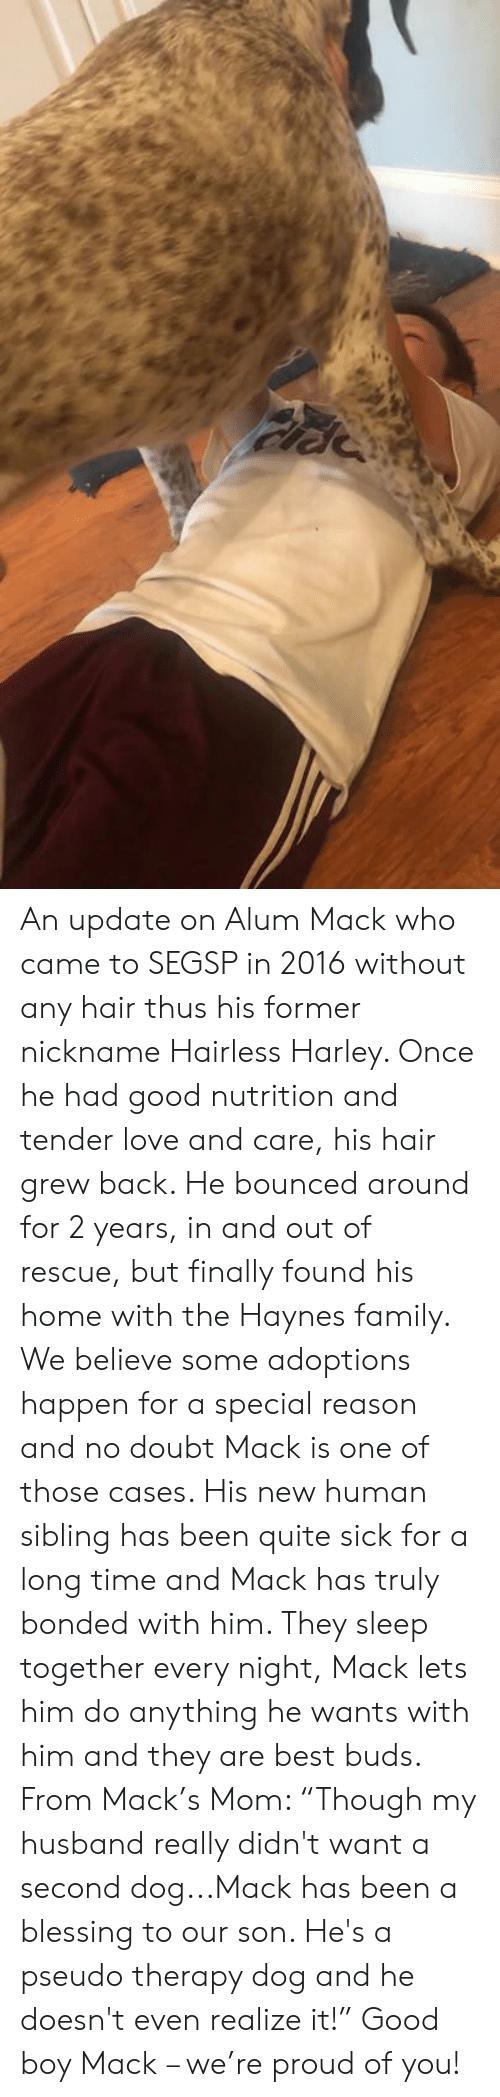 """Family, Love, and Memes: An update on Alum Mack who came to SEGSP in 2016 without any hair thus his former nickname Hairless Harley.  Once he had good nutrition and tender love and care, his hair grew back. He bounced around for 2 years, in and out of rescue, but finally found his home with the Haynes family.  We believe some adoptions happen for a special reason and no doubt Mack is one of those cases. His new human sibling has been quite sick for a long time and Mack has truly bonded with him. They sleep together every night, Mack lets him do anything he wants with him and they are best buds.  From Mack's Mom:  """"Though my husband really didn't want a second dog...Mack has been a blessing to our son.  He's a pseudo therapy dog and he doesn't even realize it!""""   Good boy Mack – we're proud of you!"""